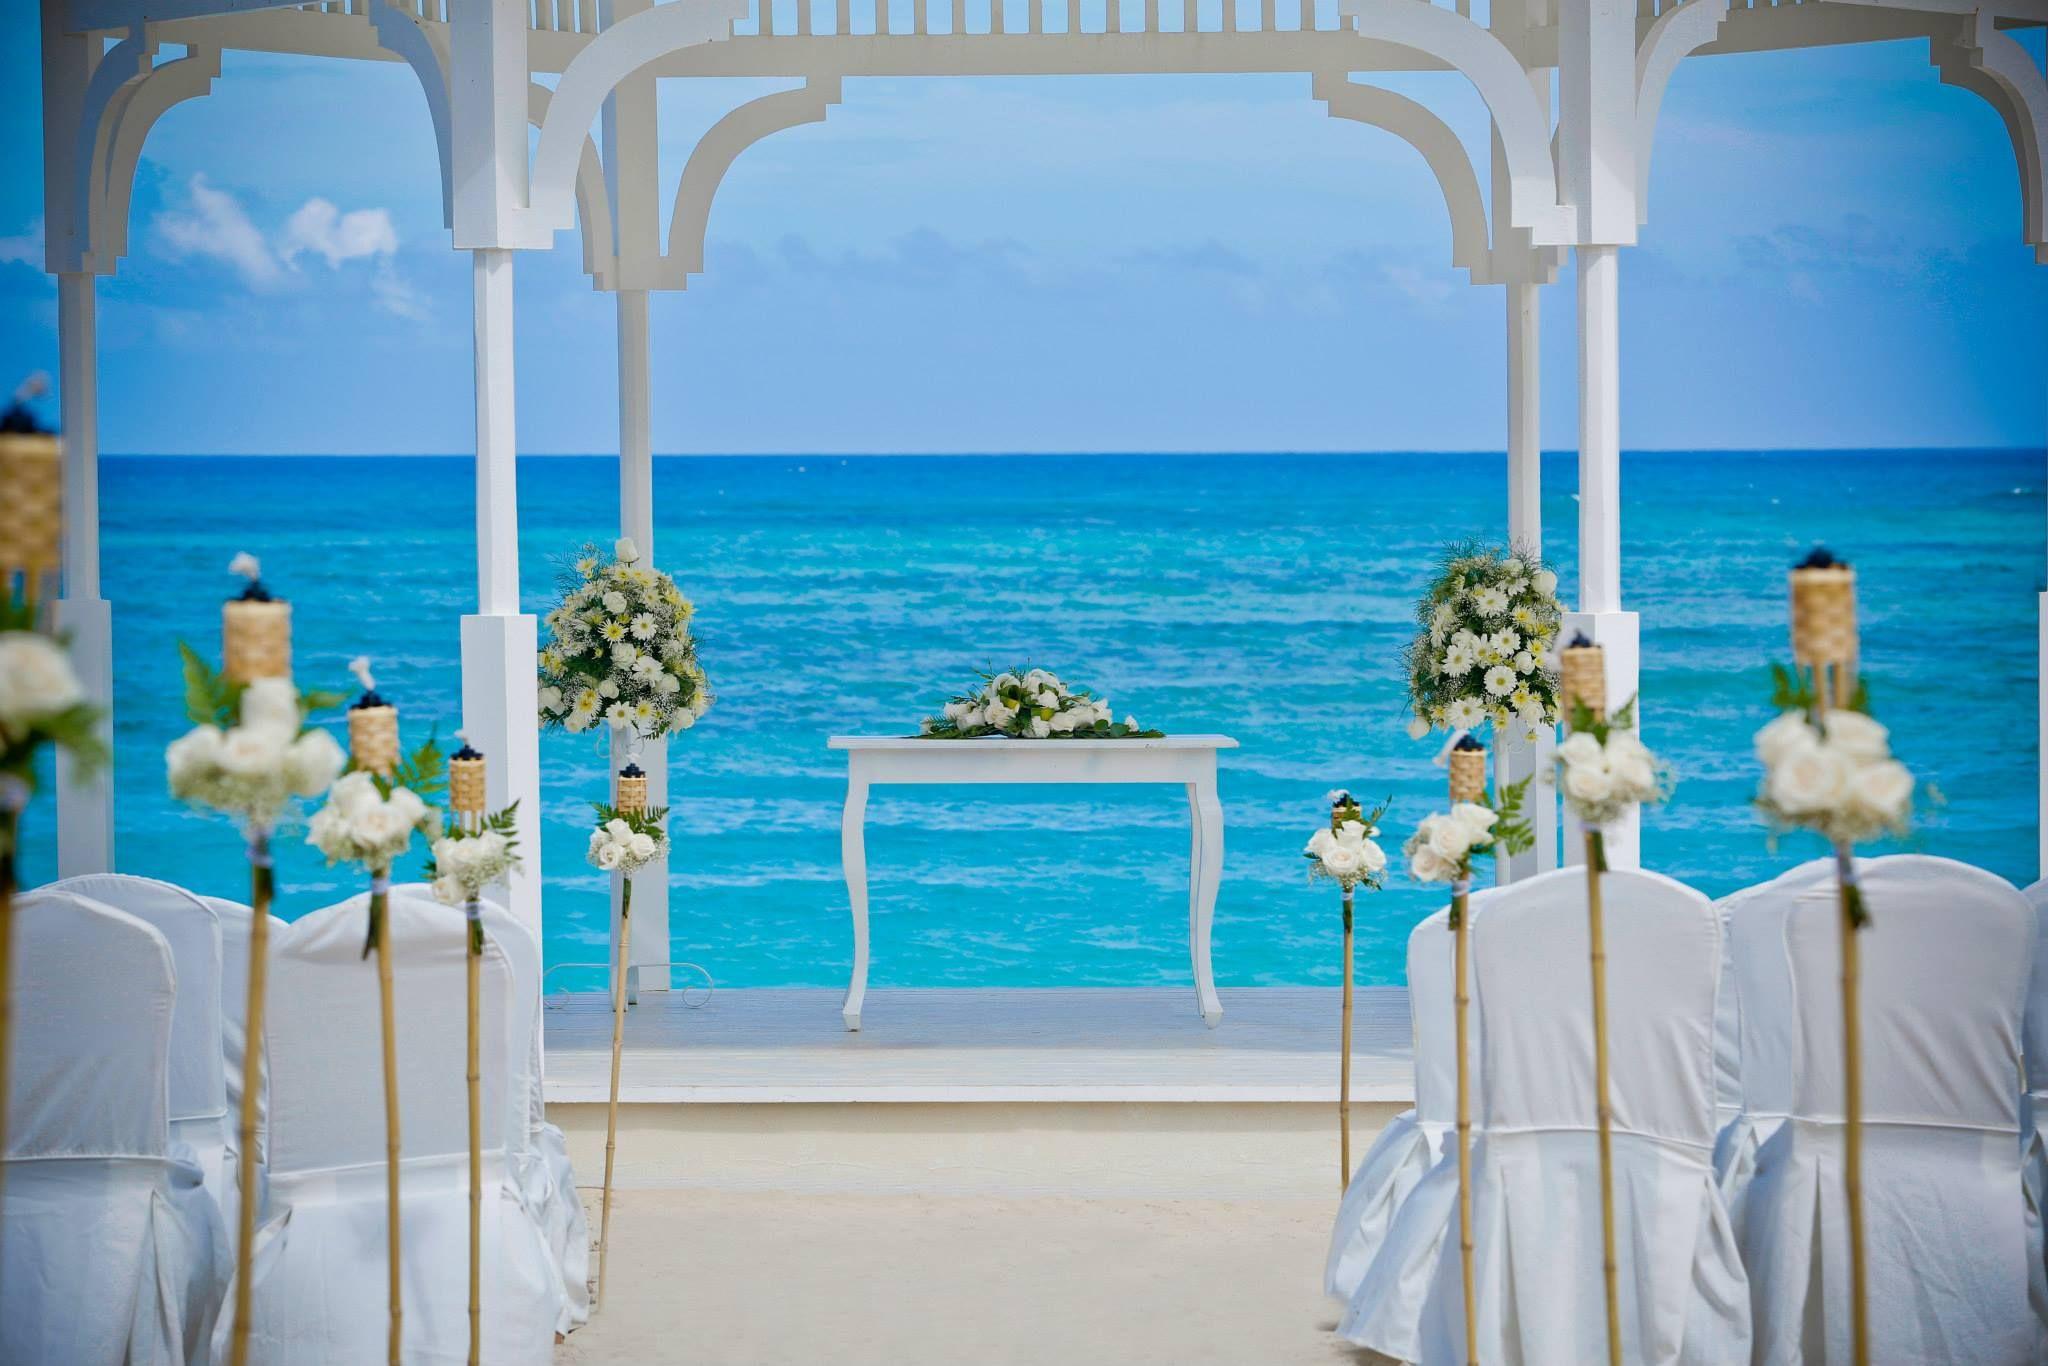 Wet Bar Wedding Reception Majestic Colonial Punta Cana Venue Pinterest And